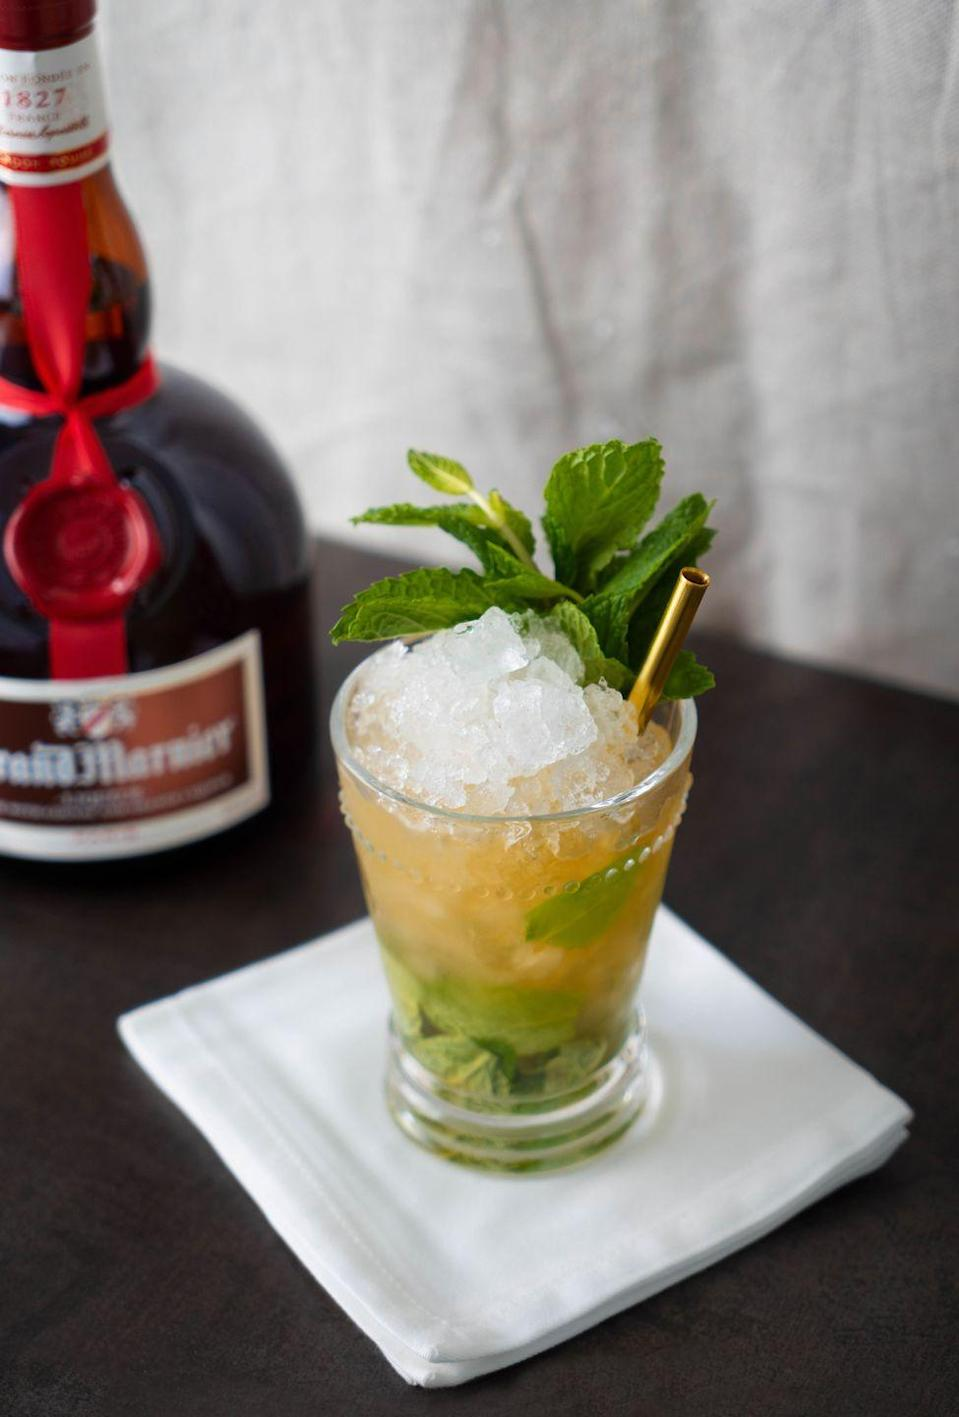 """<p><strong>Ingredients</strong></p><p>2 oz Grand Marnier Cordon Rouge<br>10-15 fresh mint leaves </p><p><strong>Instructions</strong></p><p>Slap the mint and set it inside the bottom of a rocks glass or julep cup. Add the Grand Mariner and gently muddle. Top with crushed ice to the top of the cup or glass until it forms a cone. Garnish with a bouquet of fresh mint.<strong><br></strong></p><p><strong>More:</strong> <a href=""""//www.townandcountrymag.com/leisure/drinks/how-to/g667/kentucky-derby-mint-julep-guide/"""" data-ylk=""""slk:How to Make a Classic Mint Julep"""" class=""""link rapid-noclick-resp"""">How to Make a Classic Mint Julep</a></p>"""